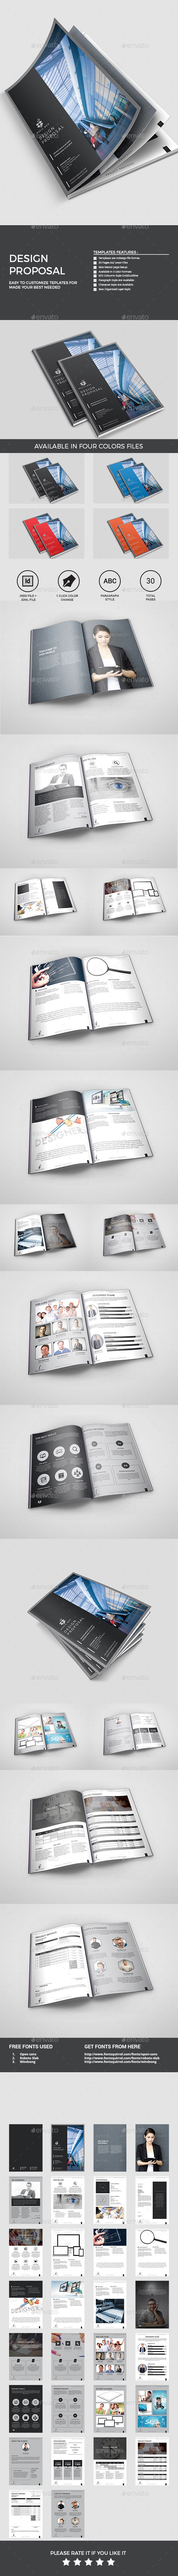 GraphicRiver Design Proposal 11341196